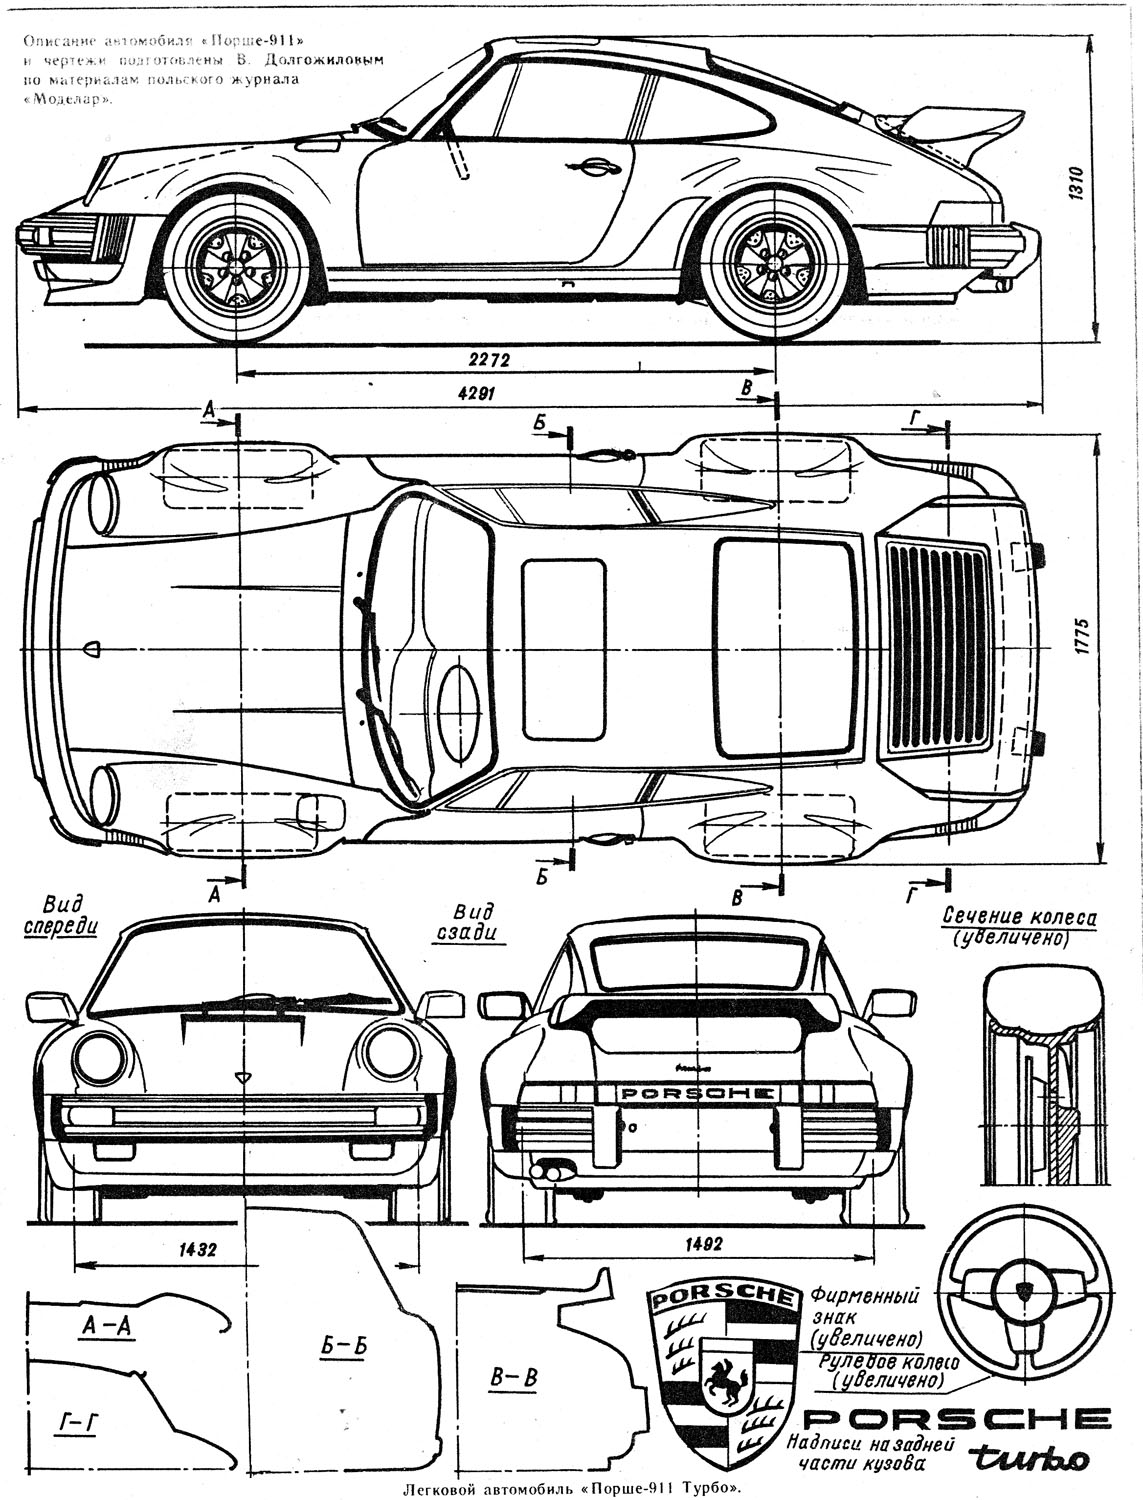 1979 Porsche 928 Wiring Diagram also Fuse Diagram 1989 911 Porsche furthermore Brake Calipers as well 1974 Porsche 914 Wiring Diagram likewise Porsche 928 Fuel System Diagram. on 1984 porsche 928 s